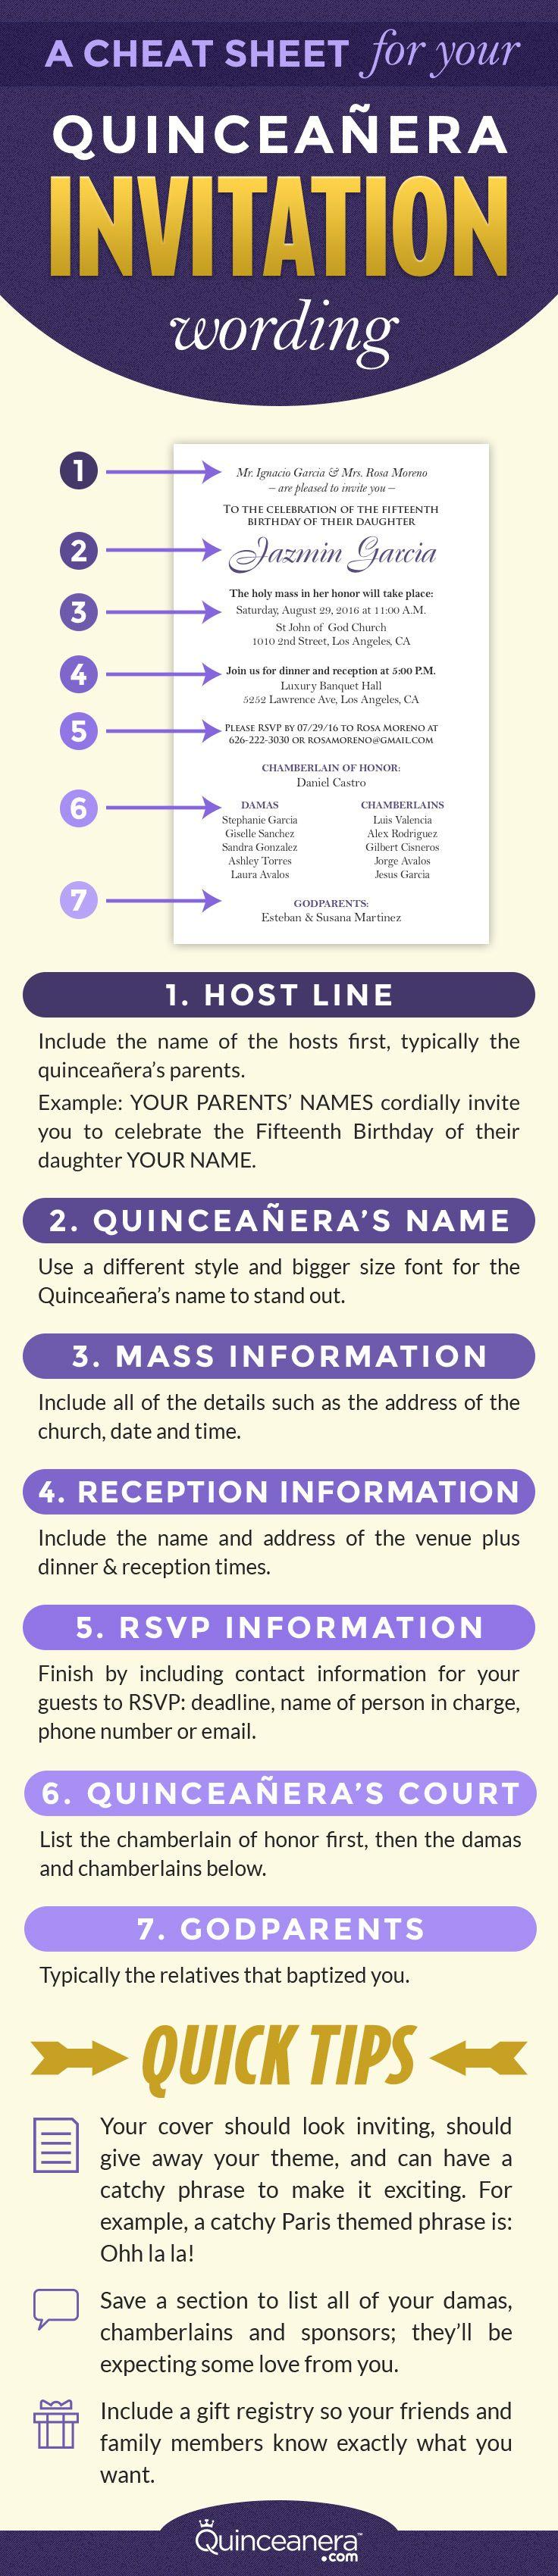 Hochzeit - A Cheat Sheet For Your Quinceanera Invitation Wording